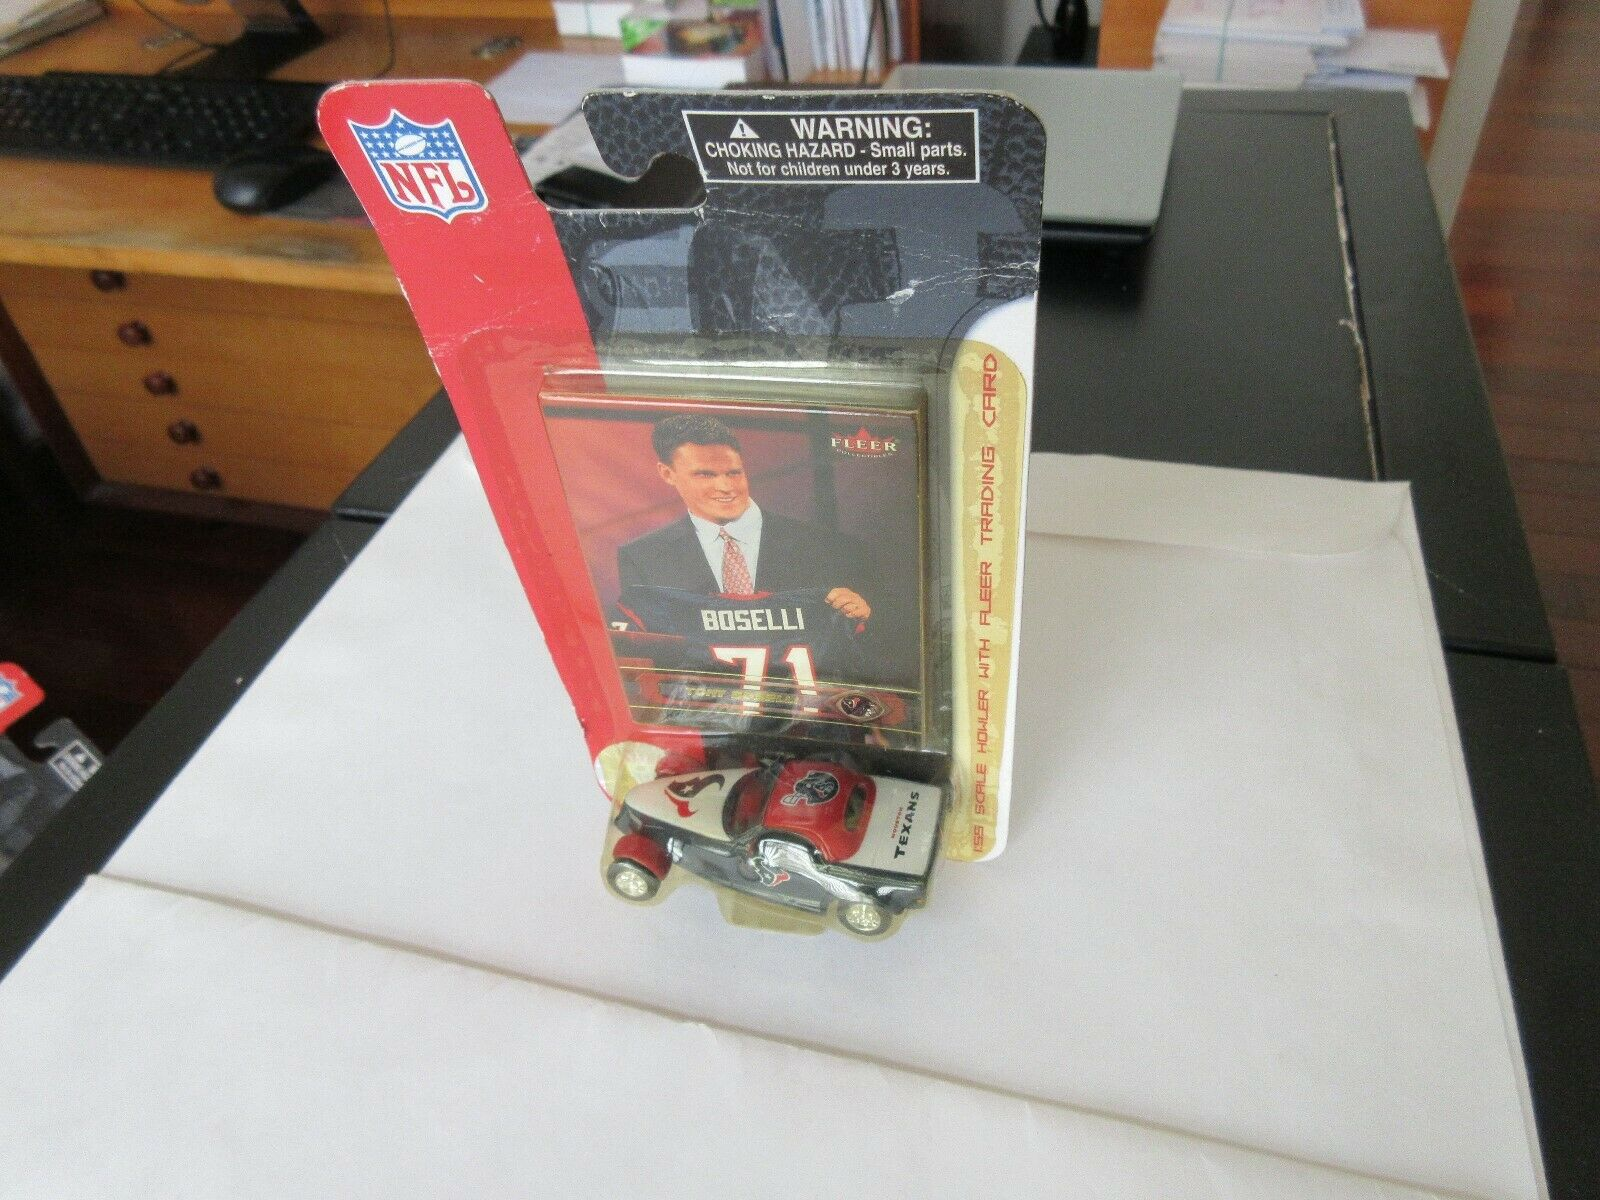 Tony Boselli , Fleer , 1:55 Scale Howler With Trading C